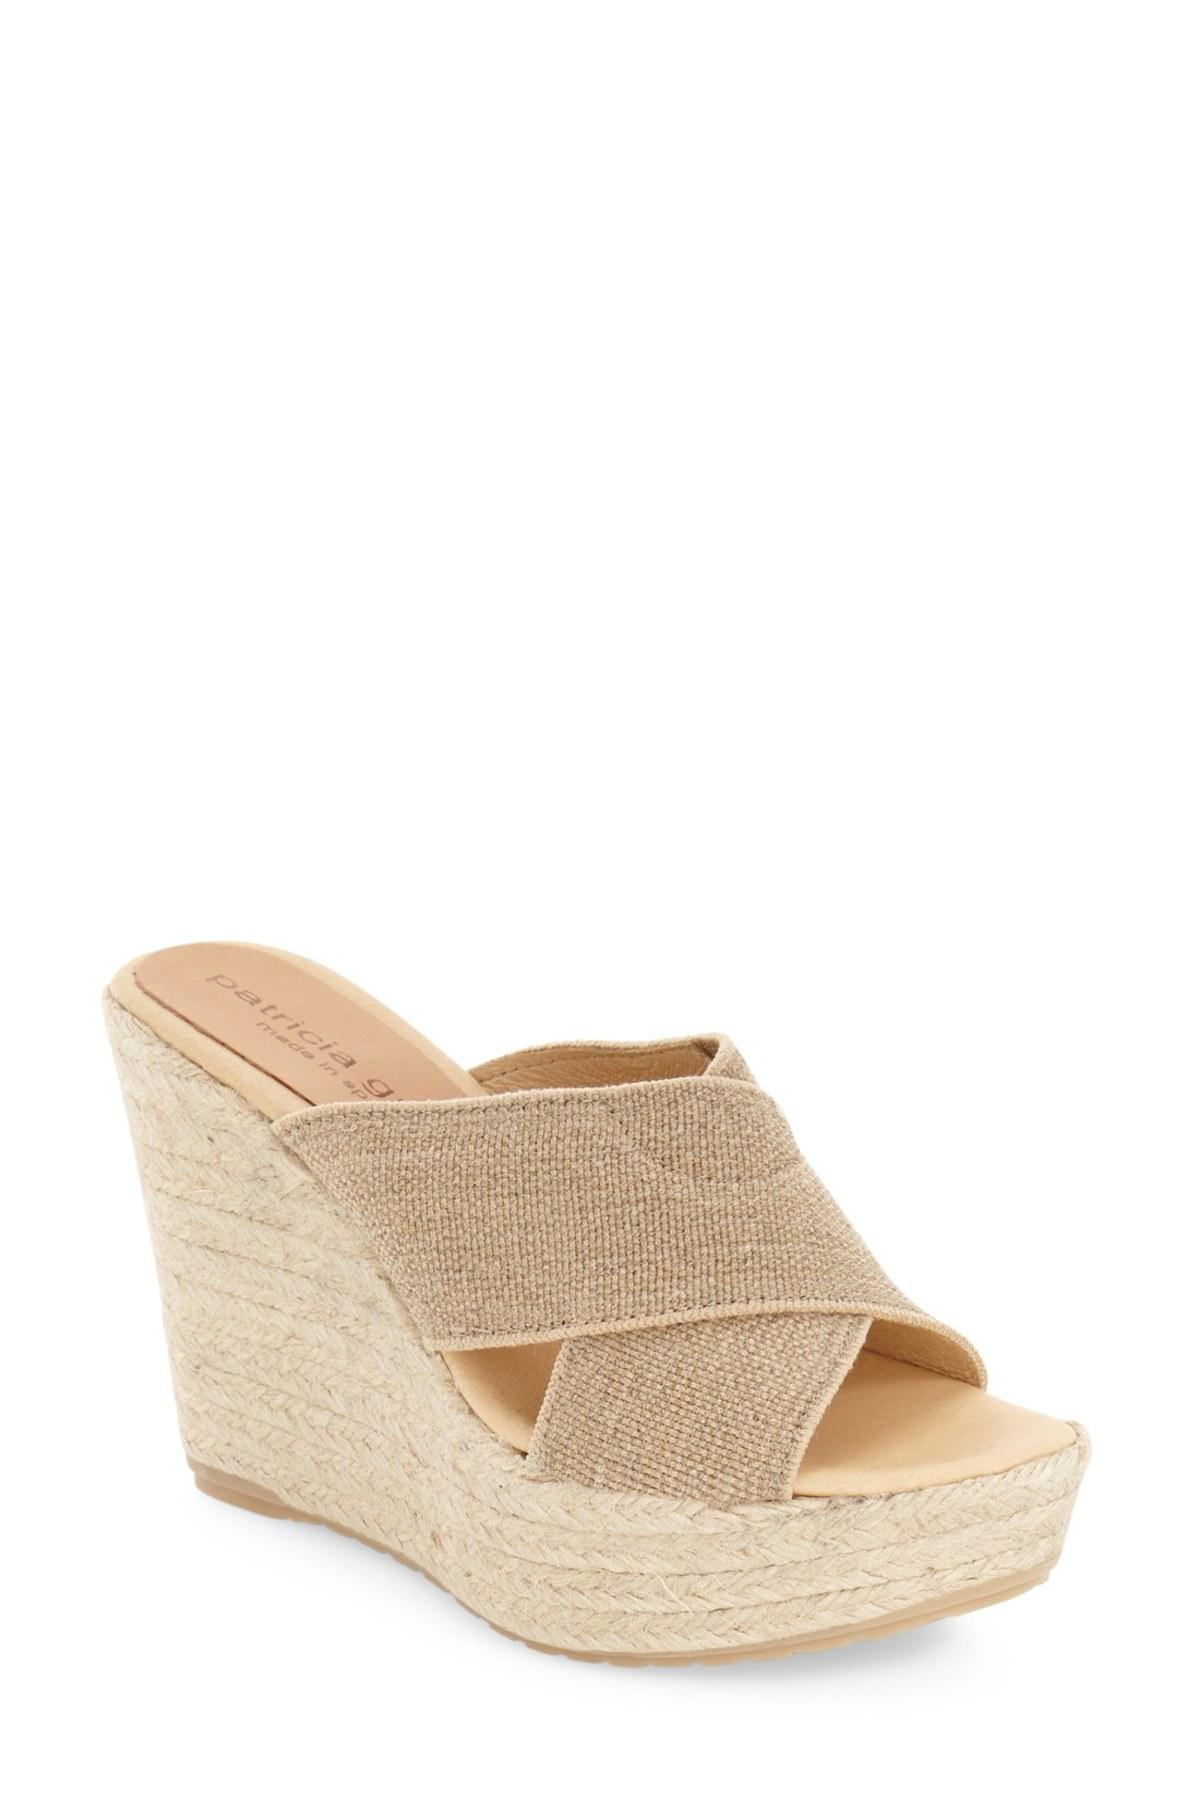 7229b7abc35 Lyst - Patricia Green Nora Espadrille Wedge Sandal in Natural